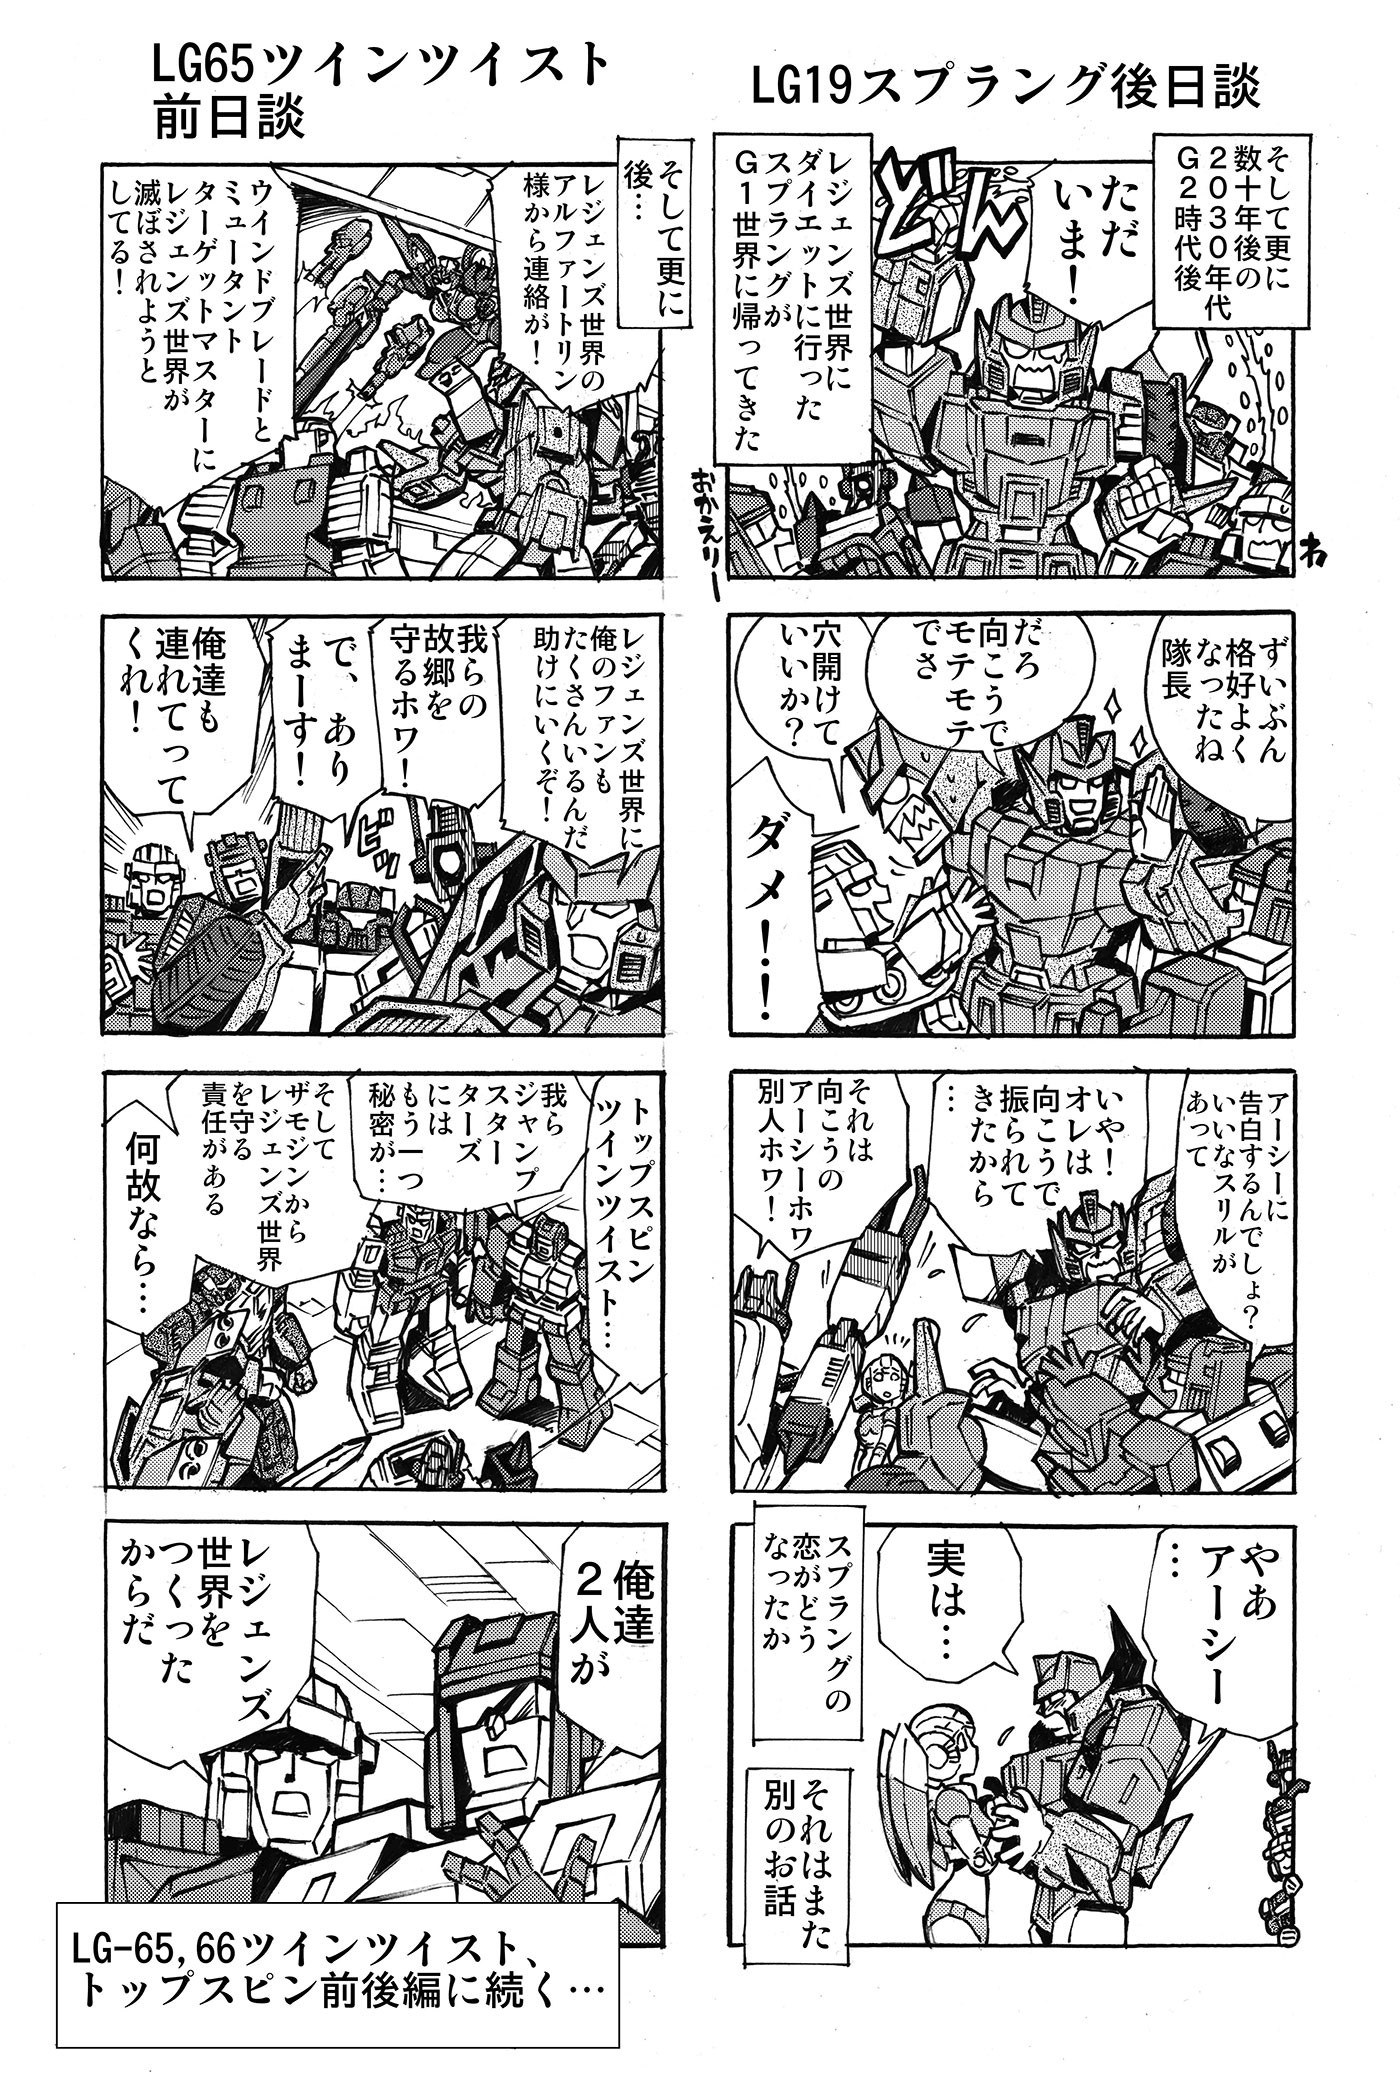 Transformers News: New Takara Tomy Transformers Legends Online Manga Mini-Update